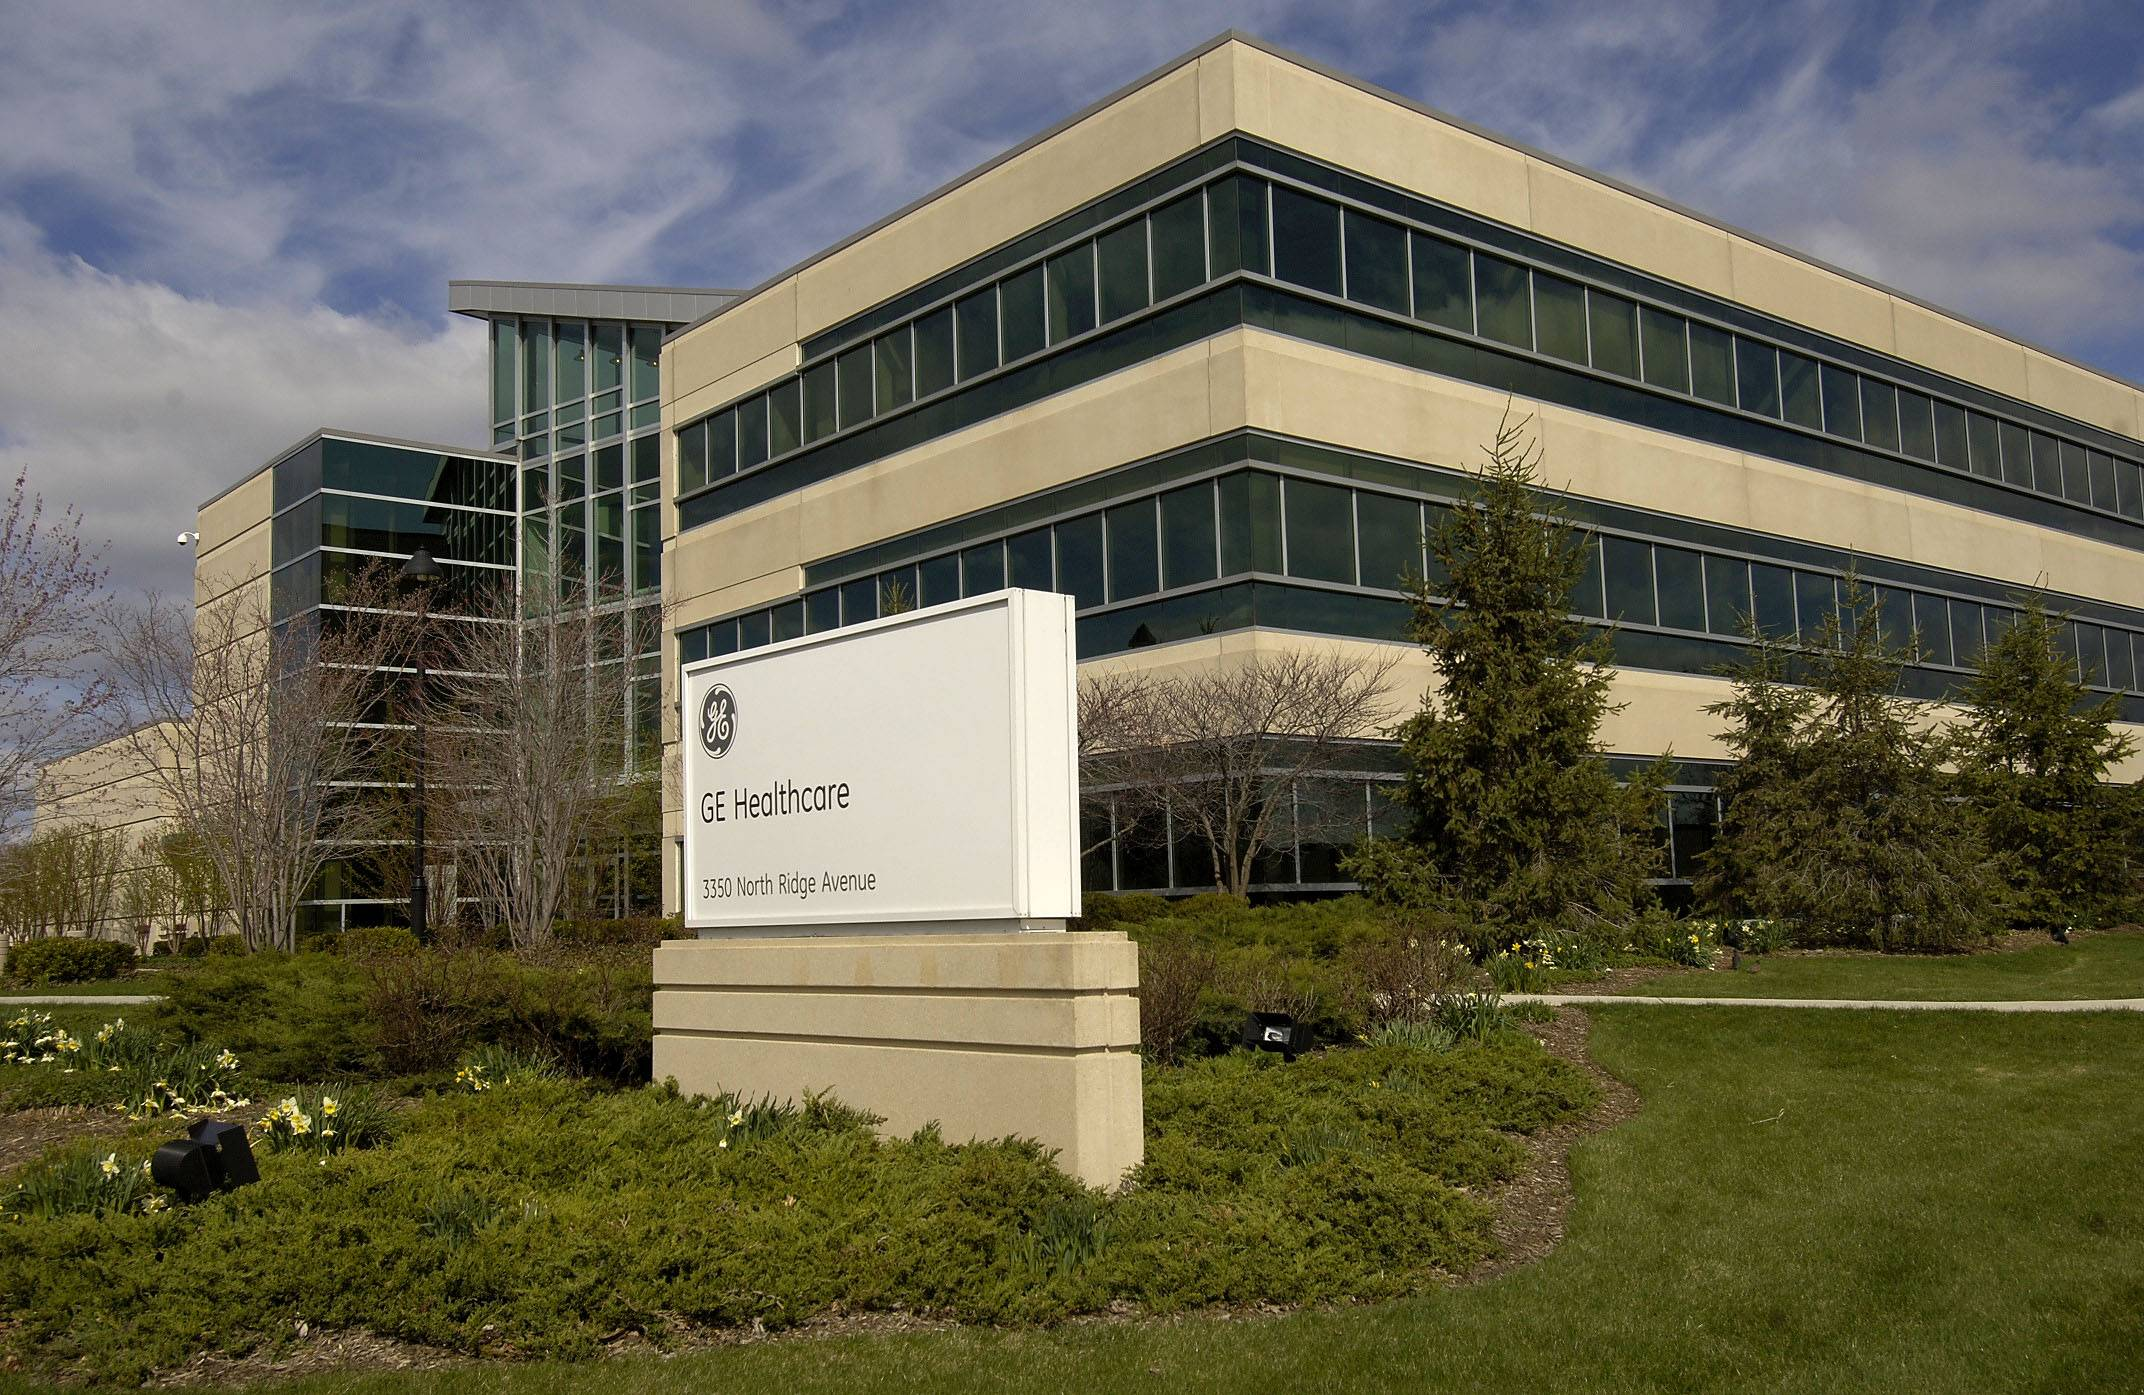 GE Healthcare has offices around the suburbs, such as this Arlington Heights location. Its Barrington office will move hundreds of workers to downtown Chicago and end its lease in Barrington by the end of the year.